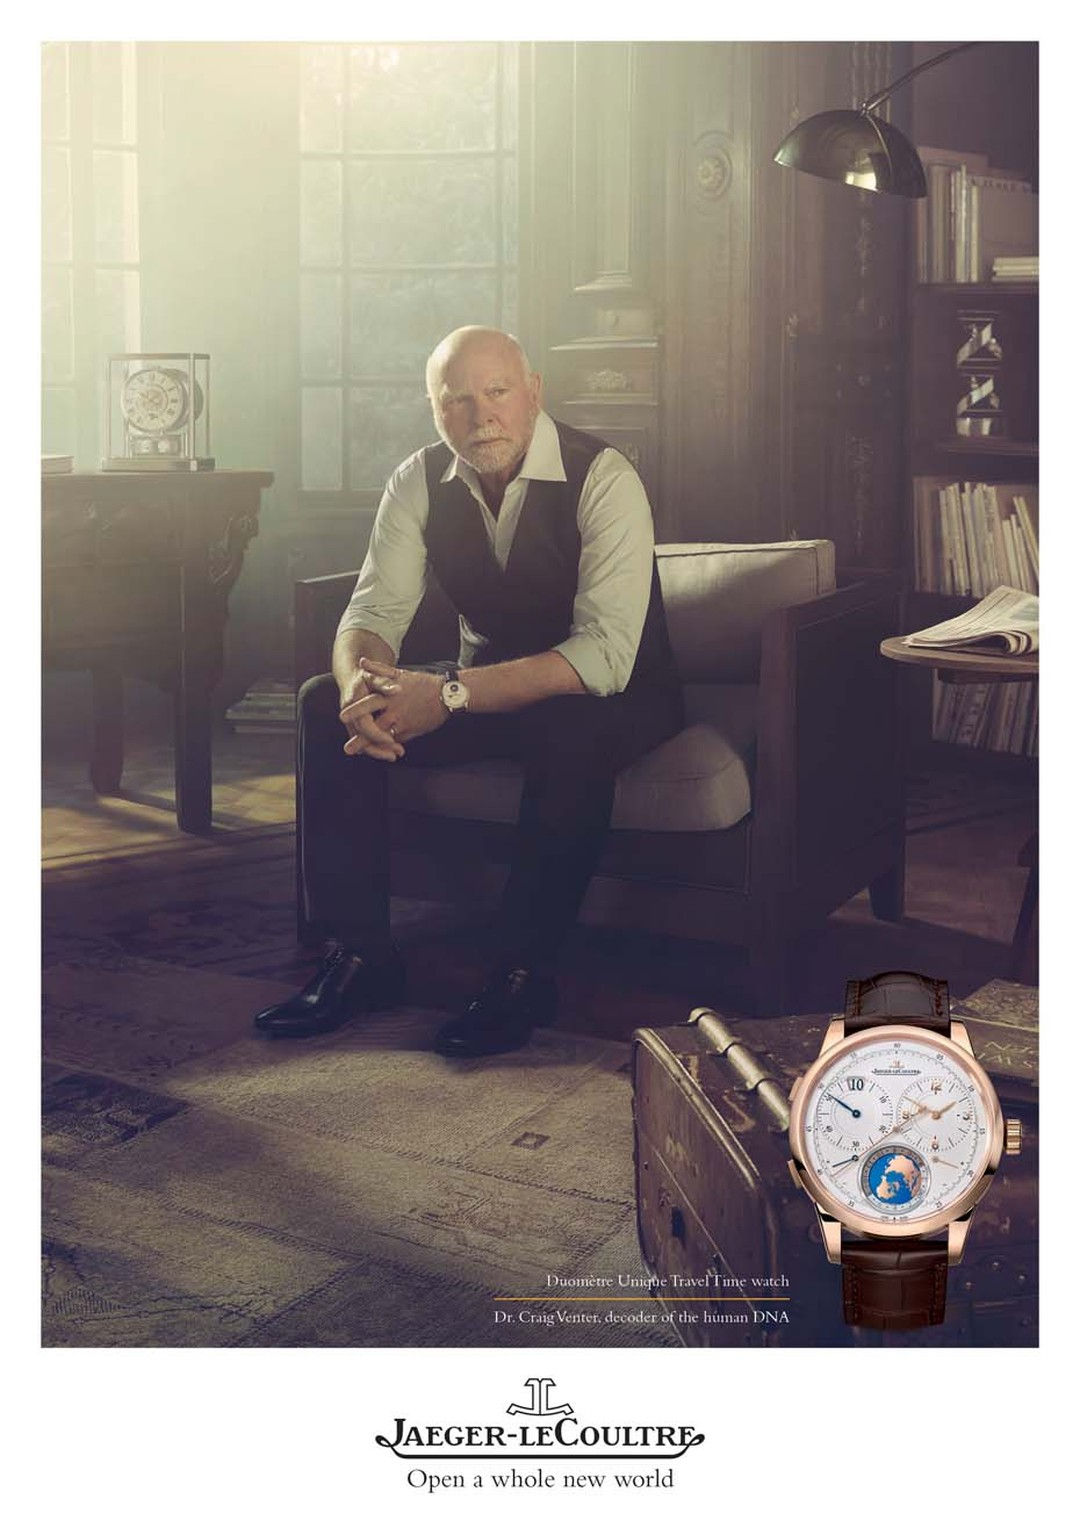 Sitting in his study, his gaze resting on a distant point, lost in thought, Dr Craig Venter wears the highly complex Duomètre Unique Travel Time watch on his wrist.